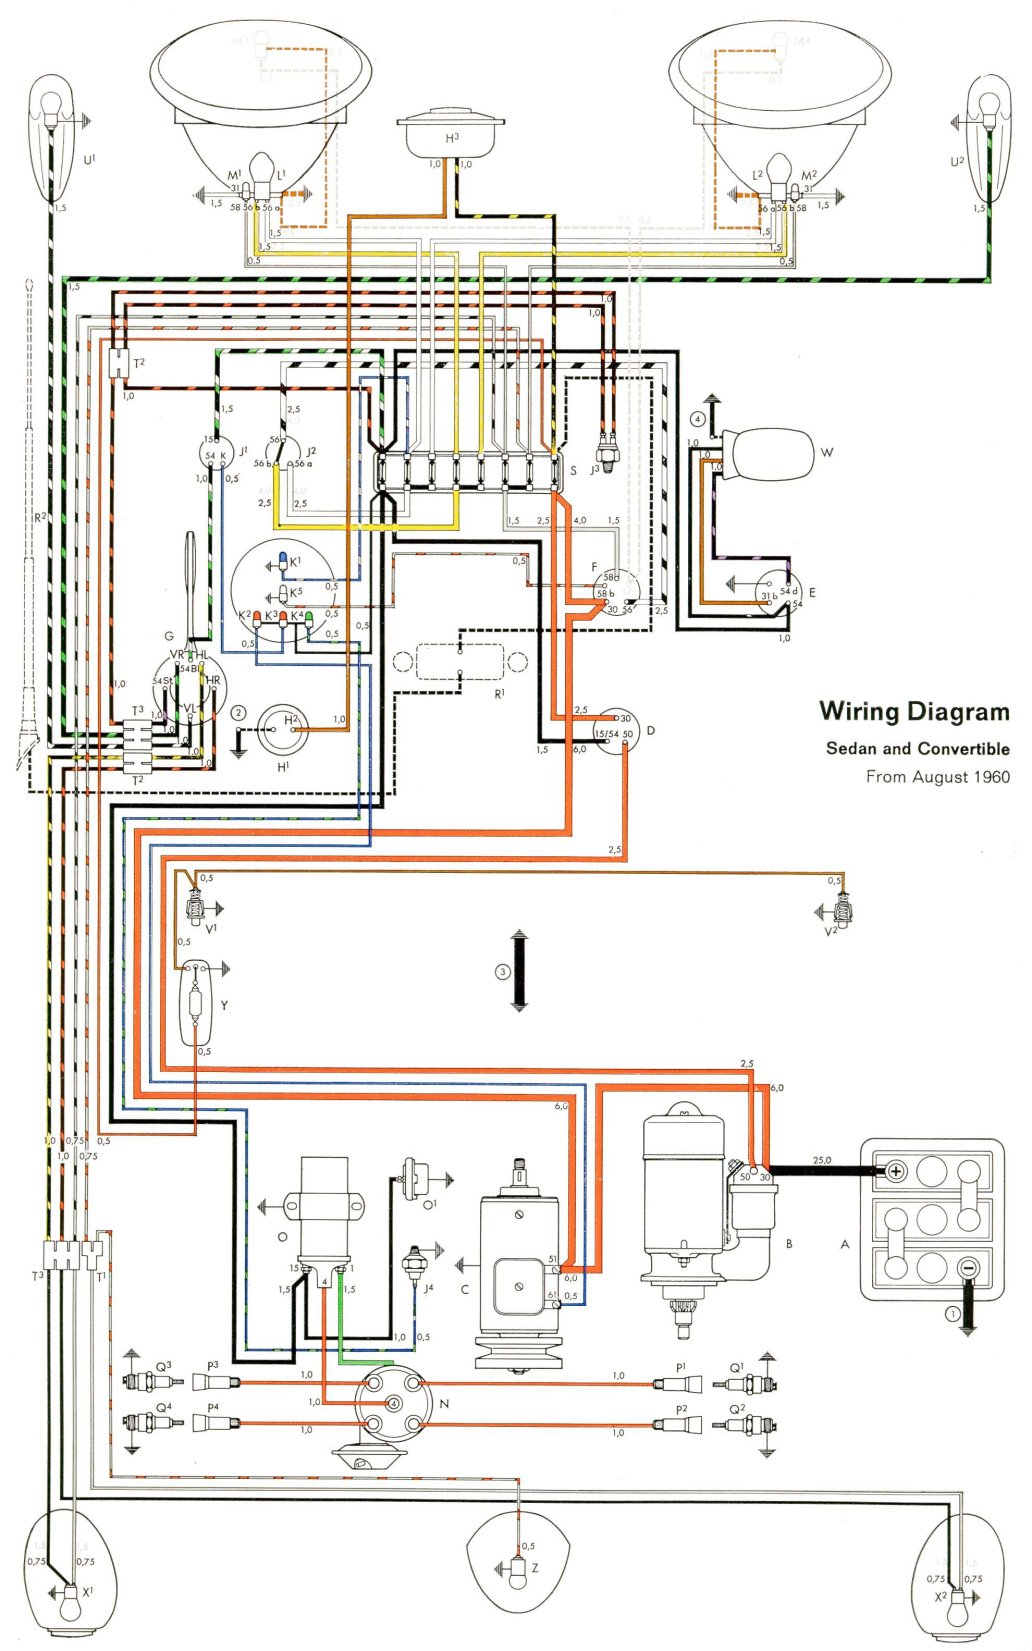 bug_61 1961 beetle wiring diagram thegoldenbug com 1972 volkswagen super beetle wiring harness at mifinder.co